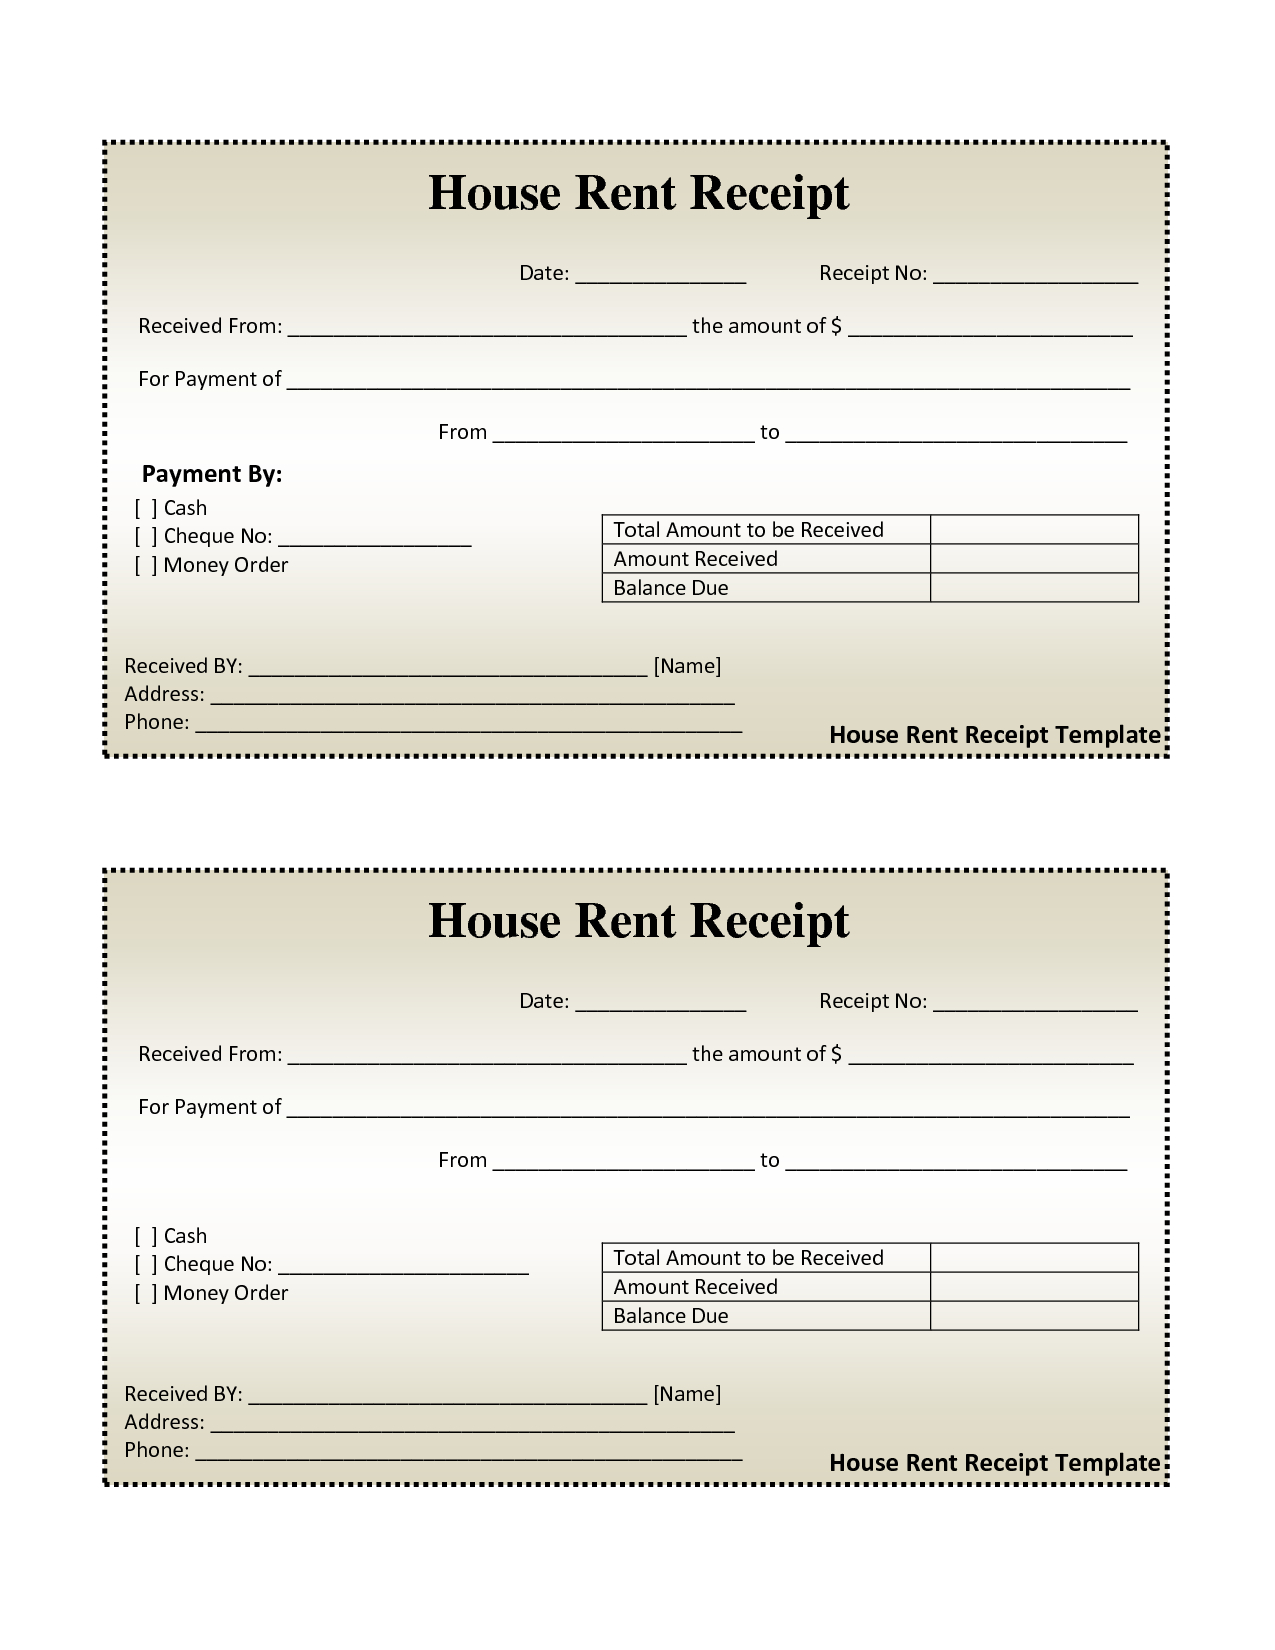 Free House Rental Invoice  House Rent Receipt Template  Doc Within Invoice Template For Rent